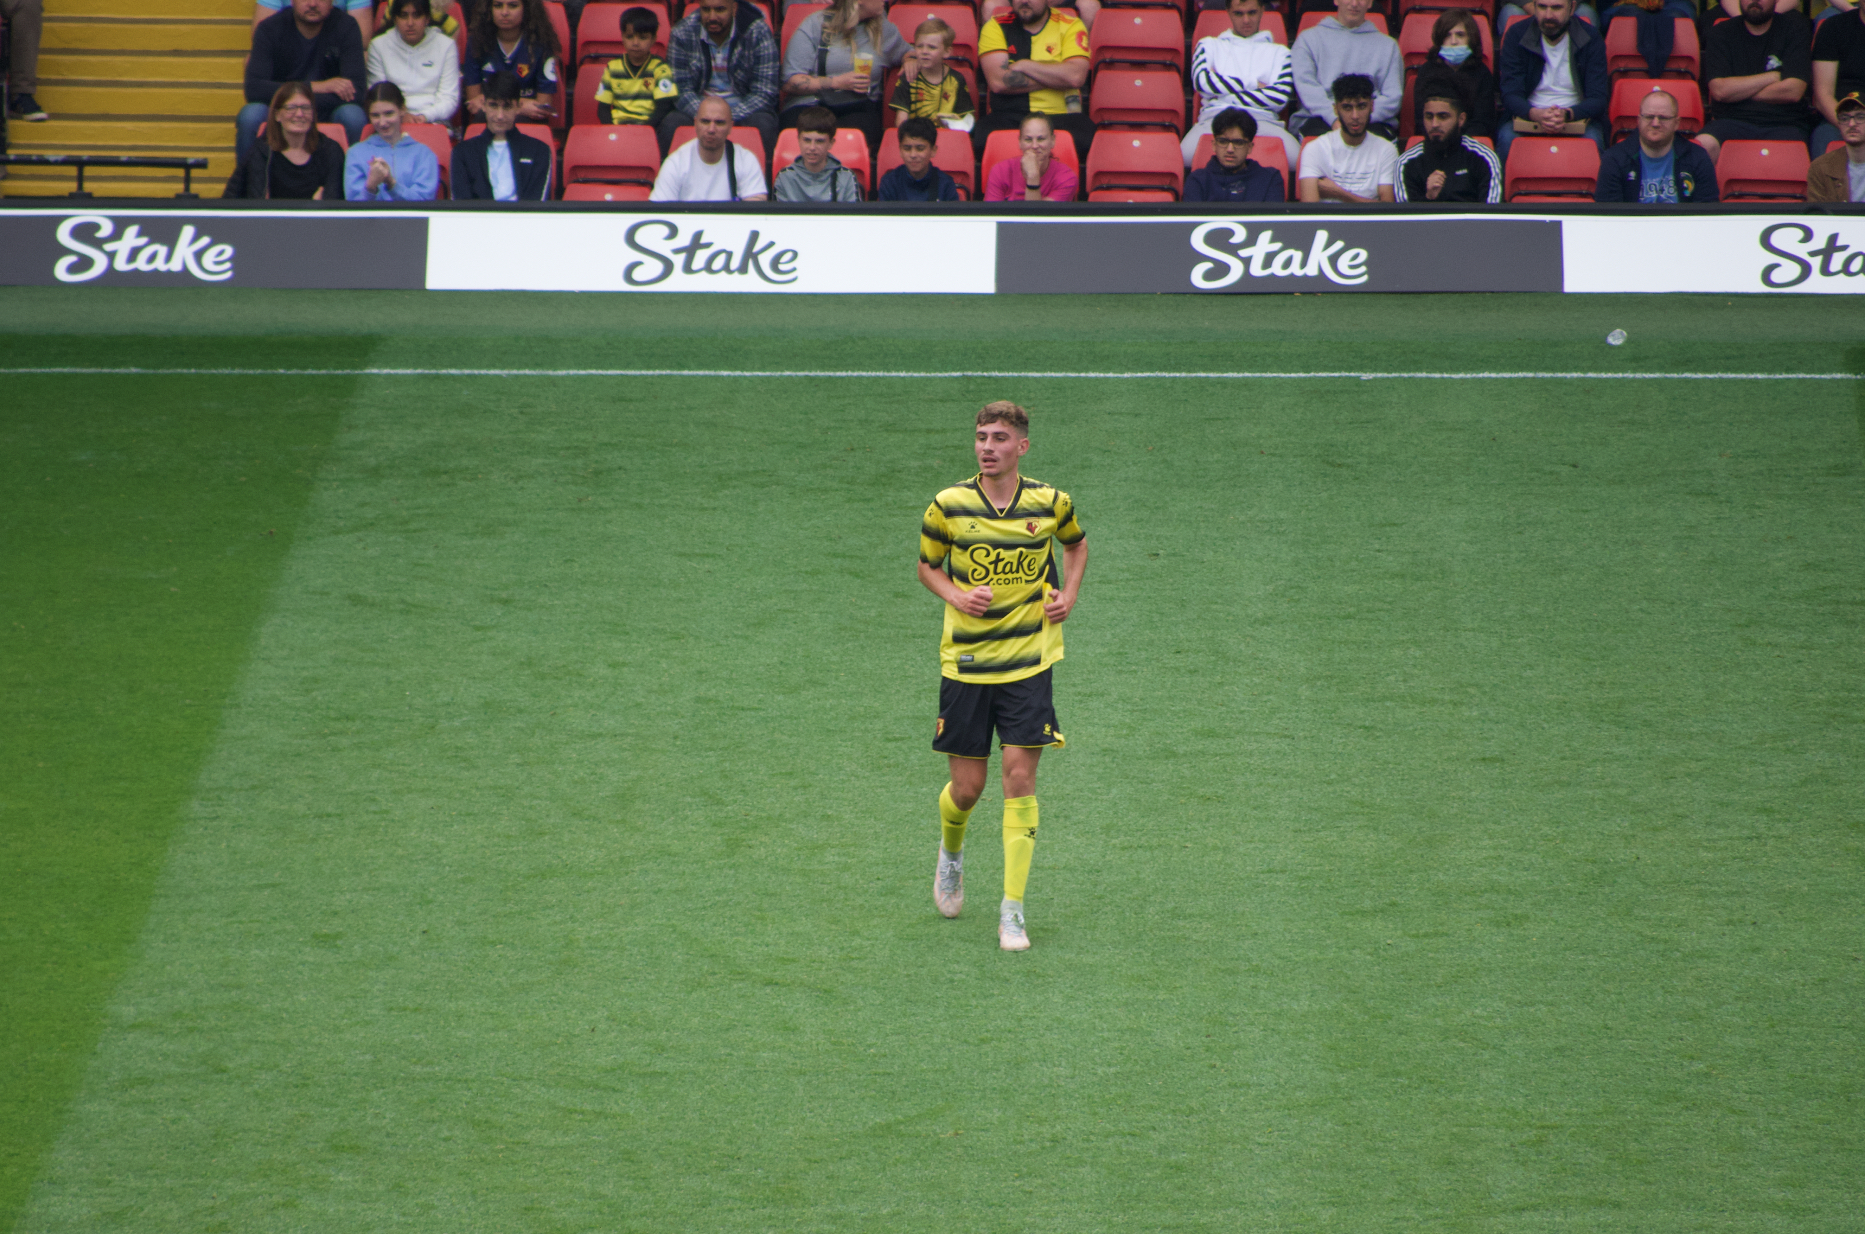 Watford sign James Morris after successful trial